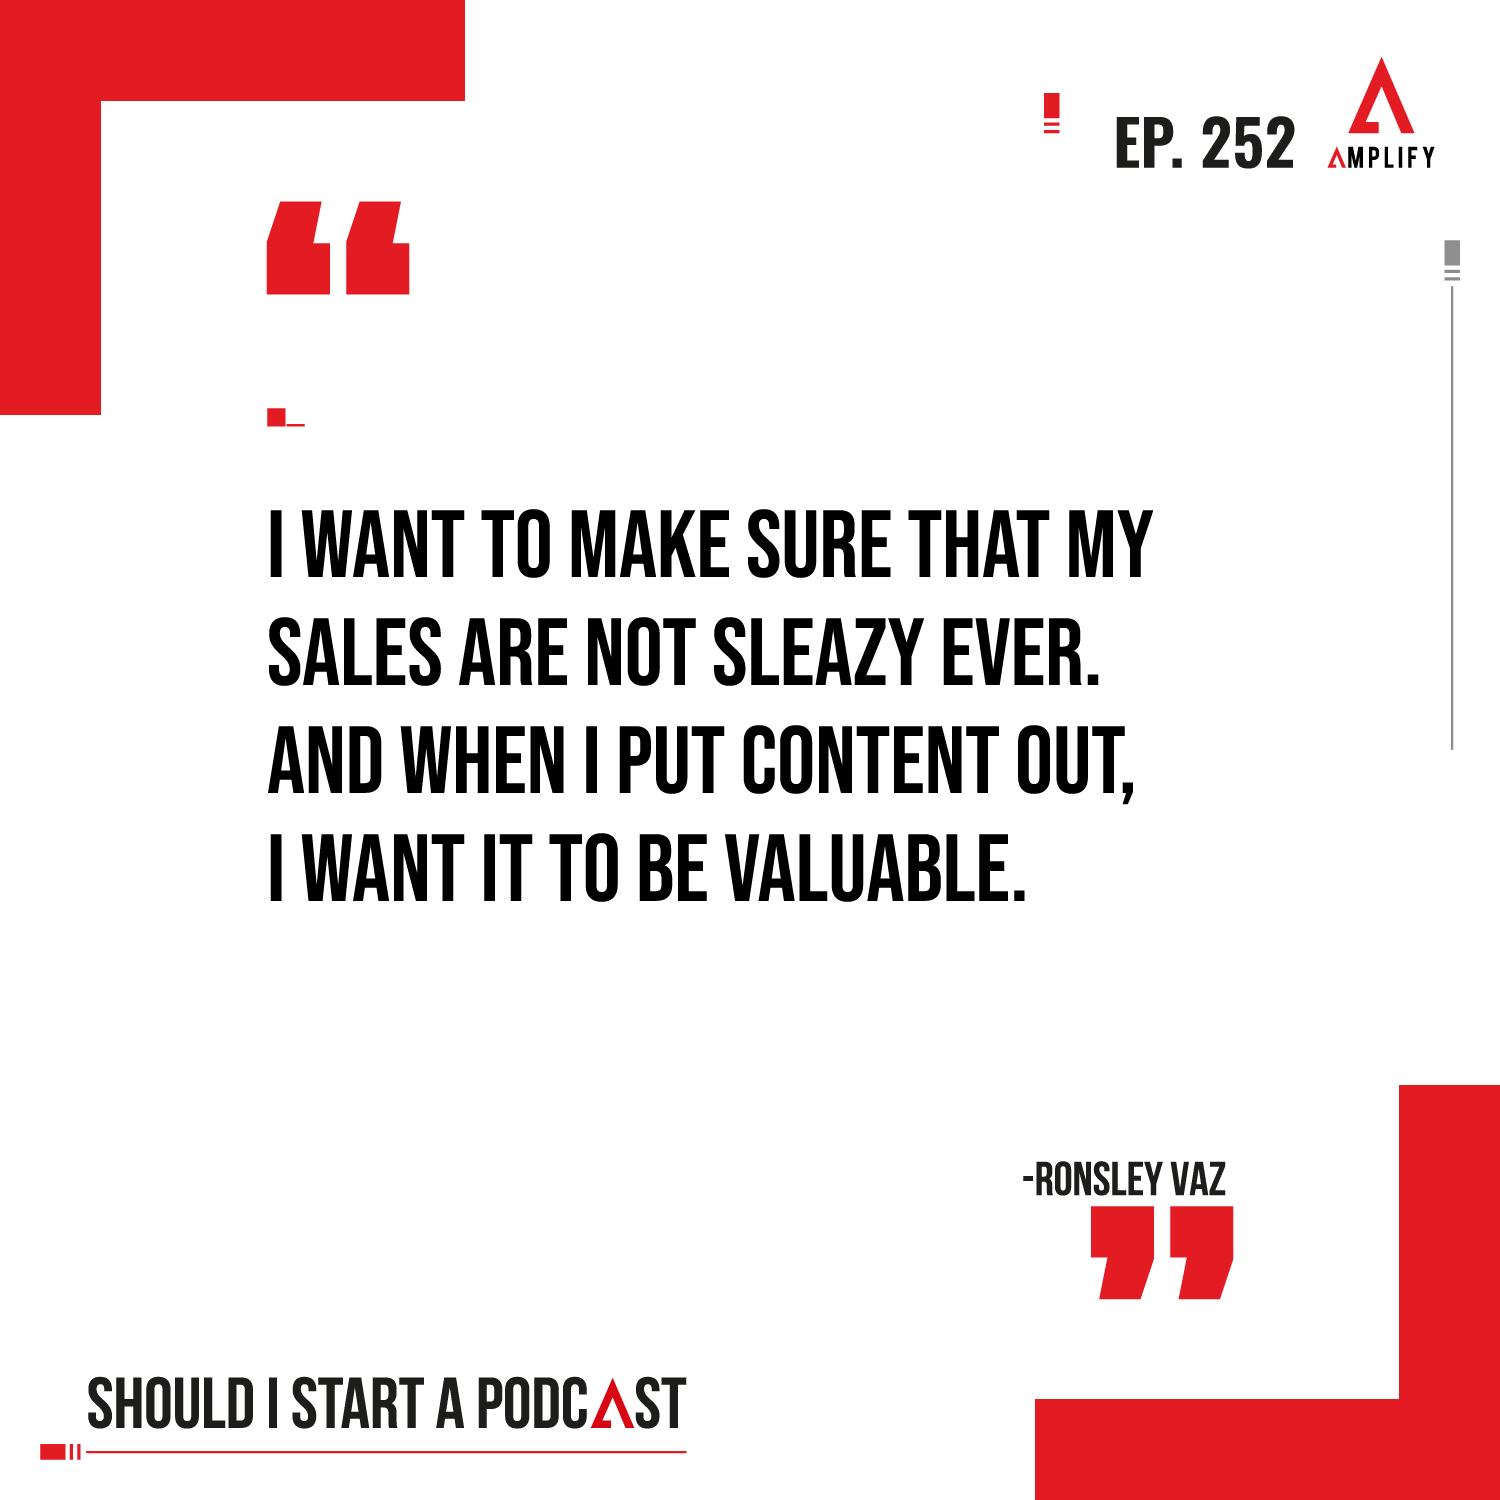 Quote: I want to make sure that my sales are not sleazy ever. And when I put content out, I want it to be valuable.